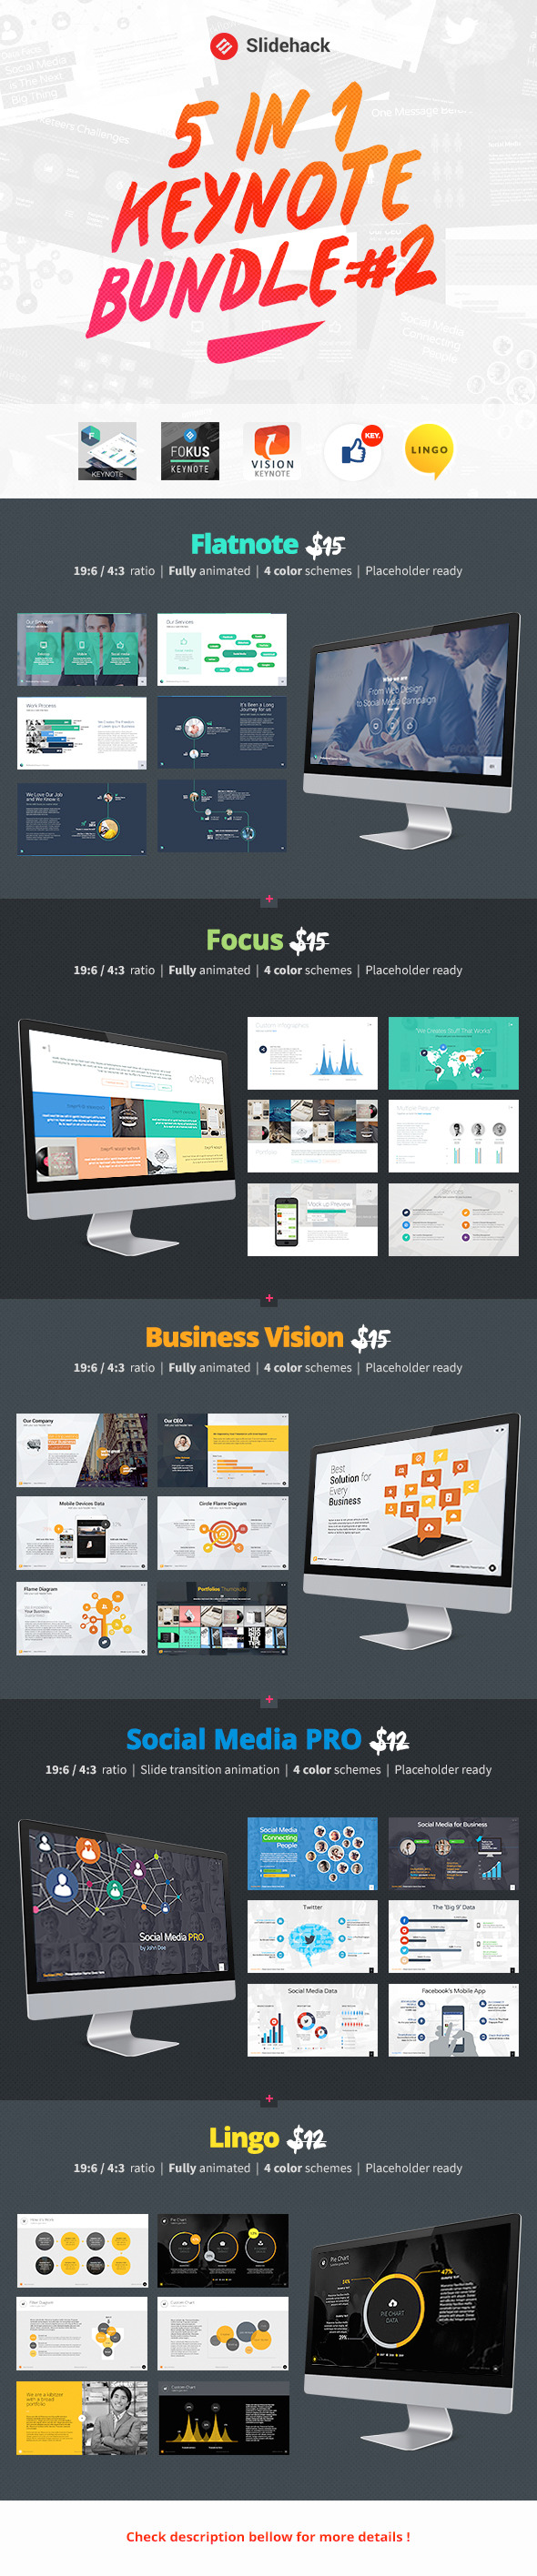 GraphicRiver Slidehack s Keynote Bundle #2 8993523